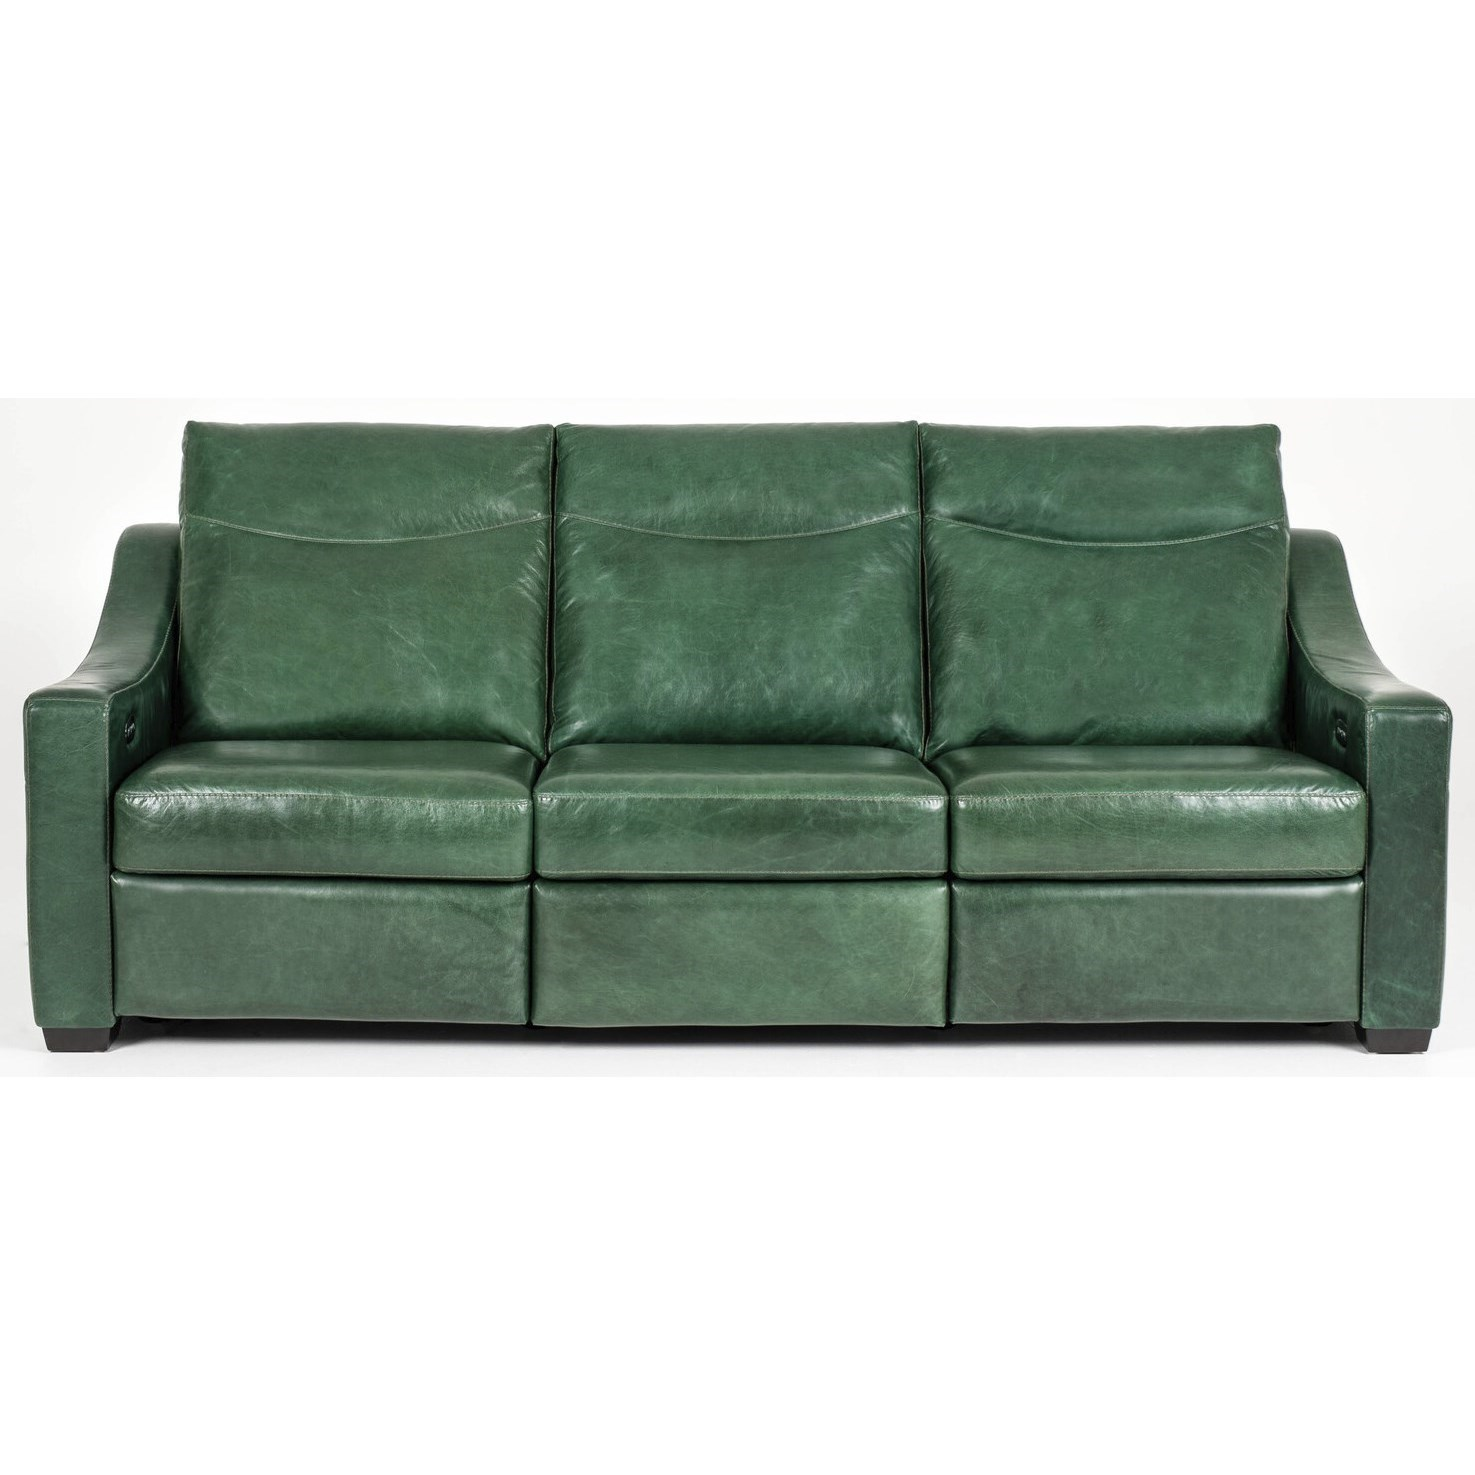 Sarasota Reclining Sofa by American Leather at Baer's Furniture